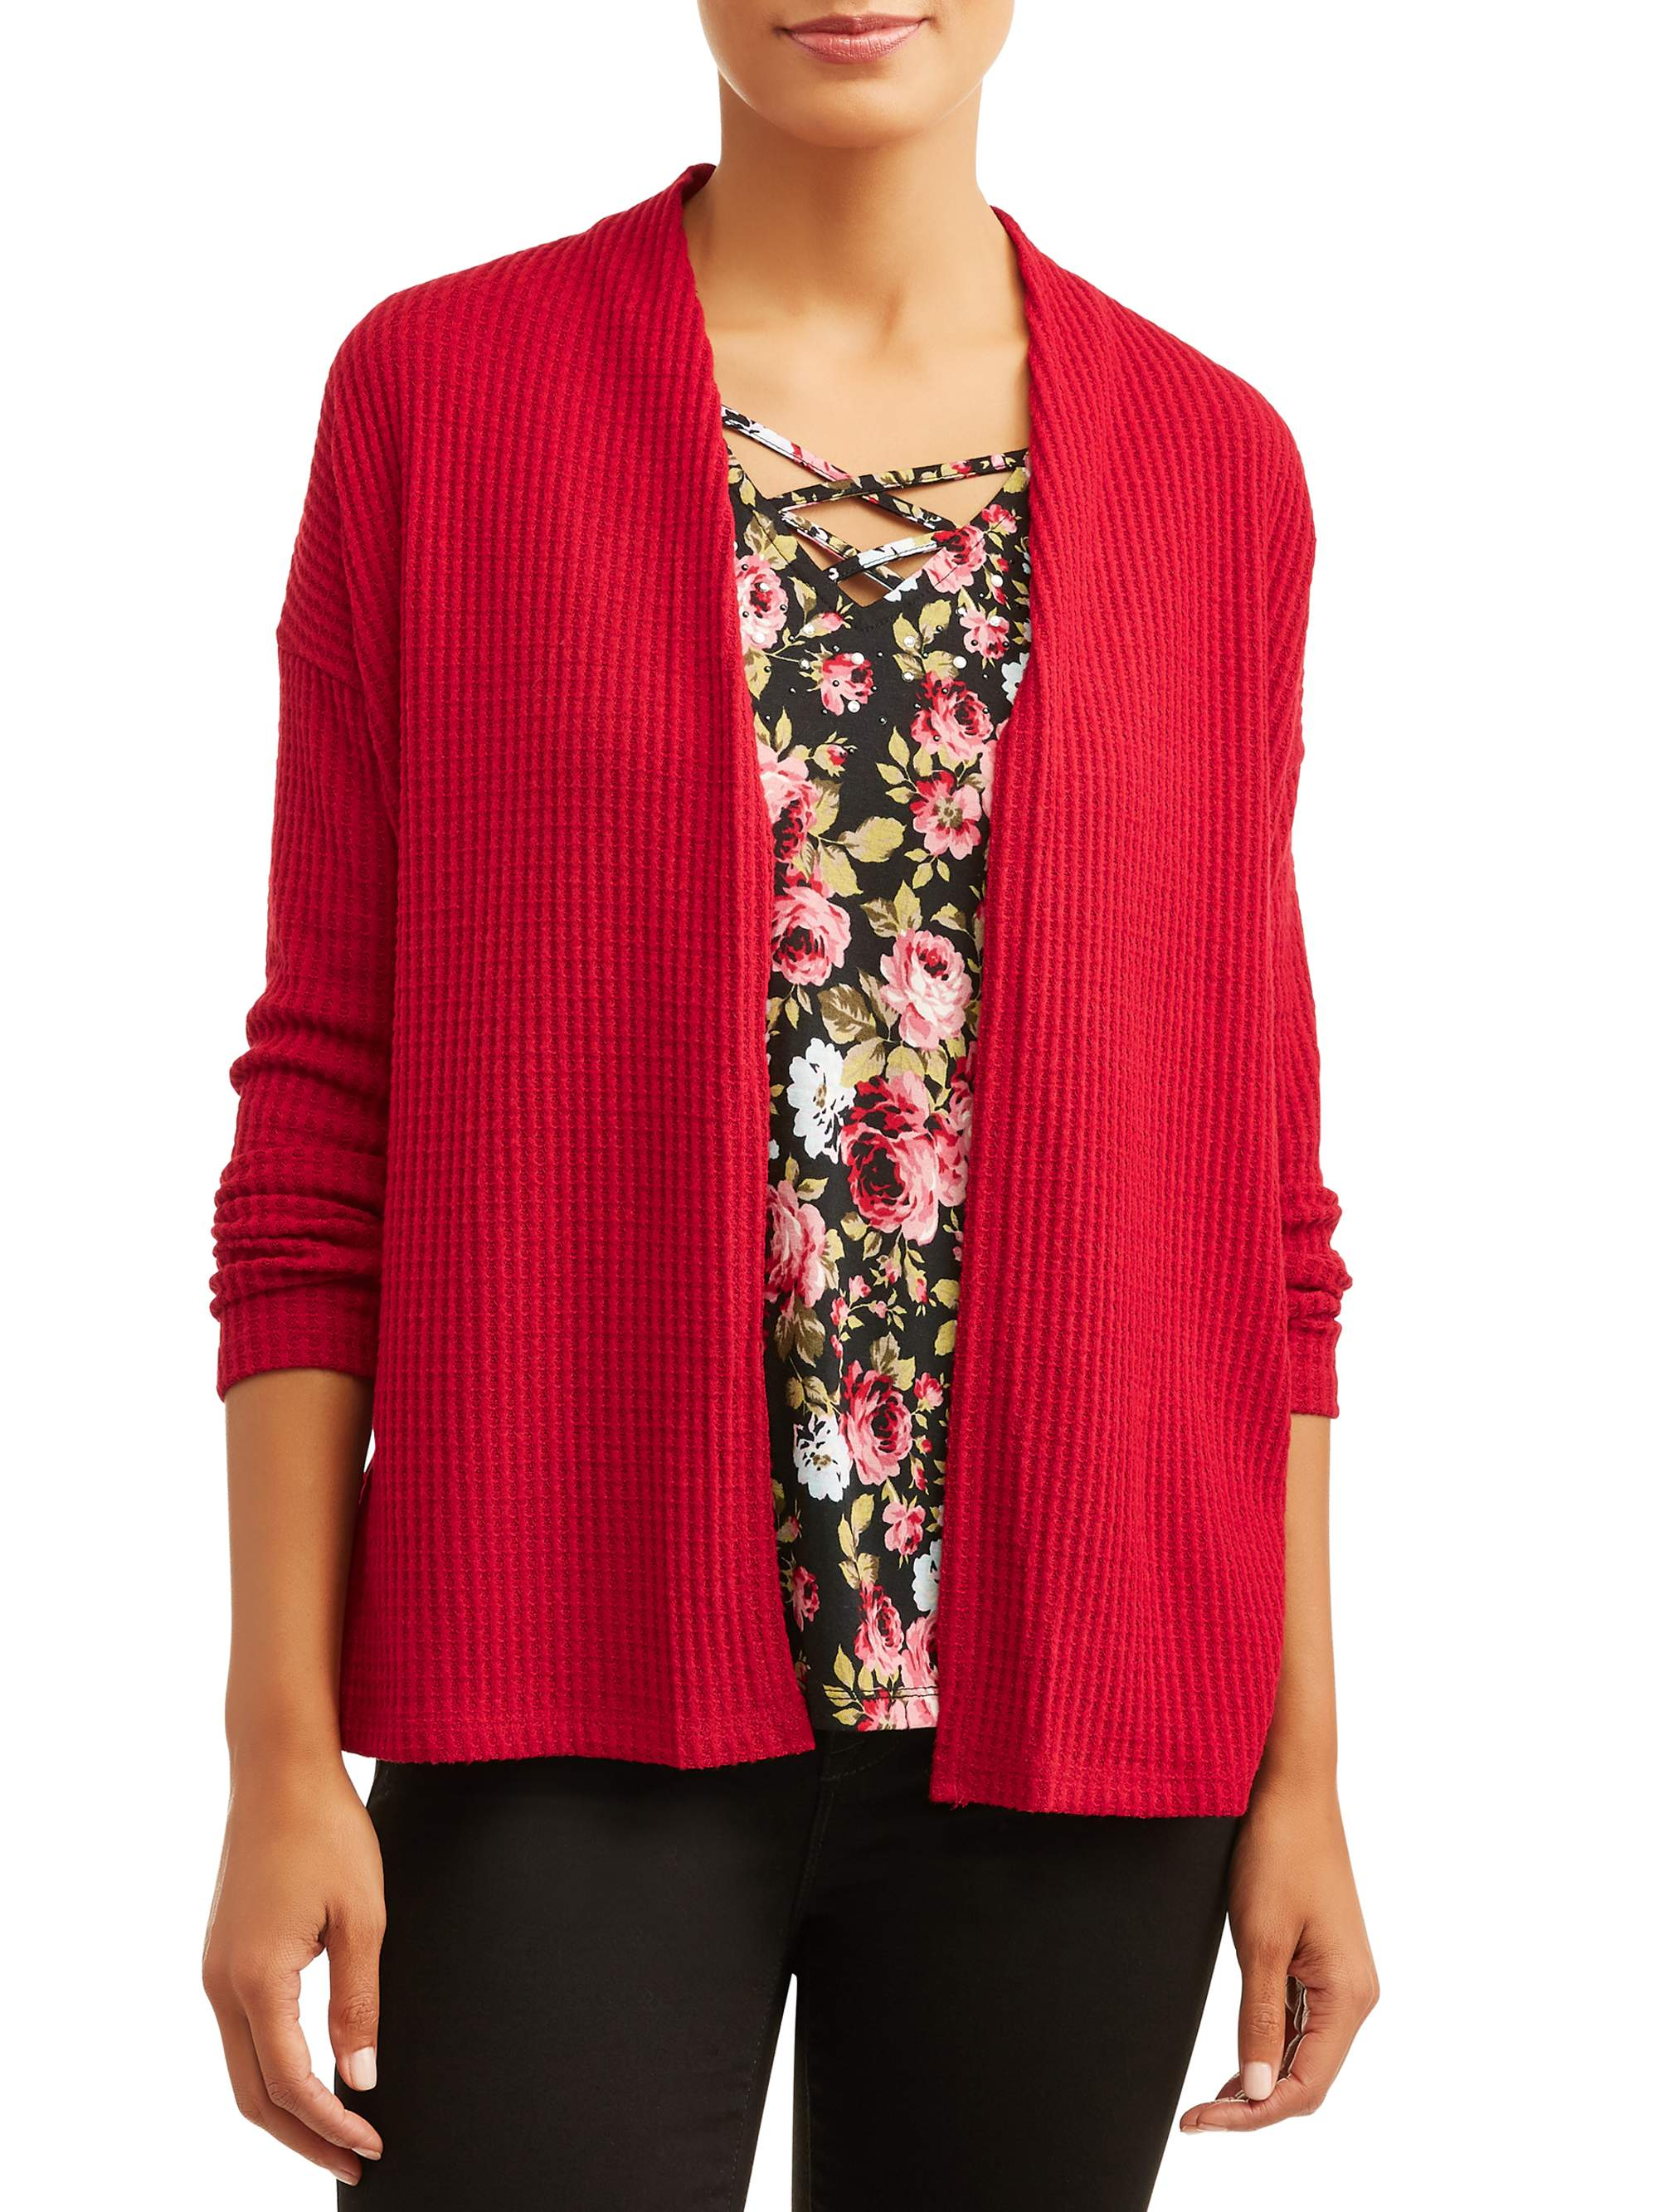 Women's Long Sleeve Embellished Top and Cardigan 2fer